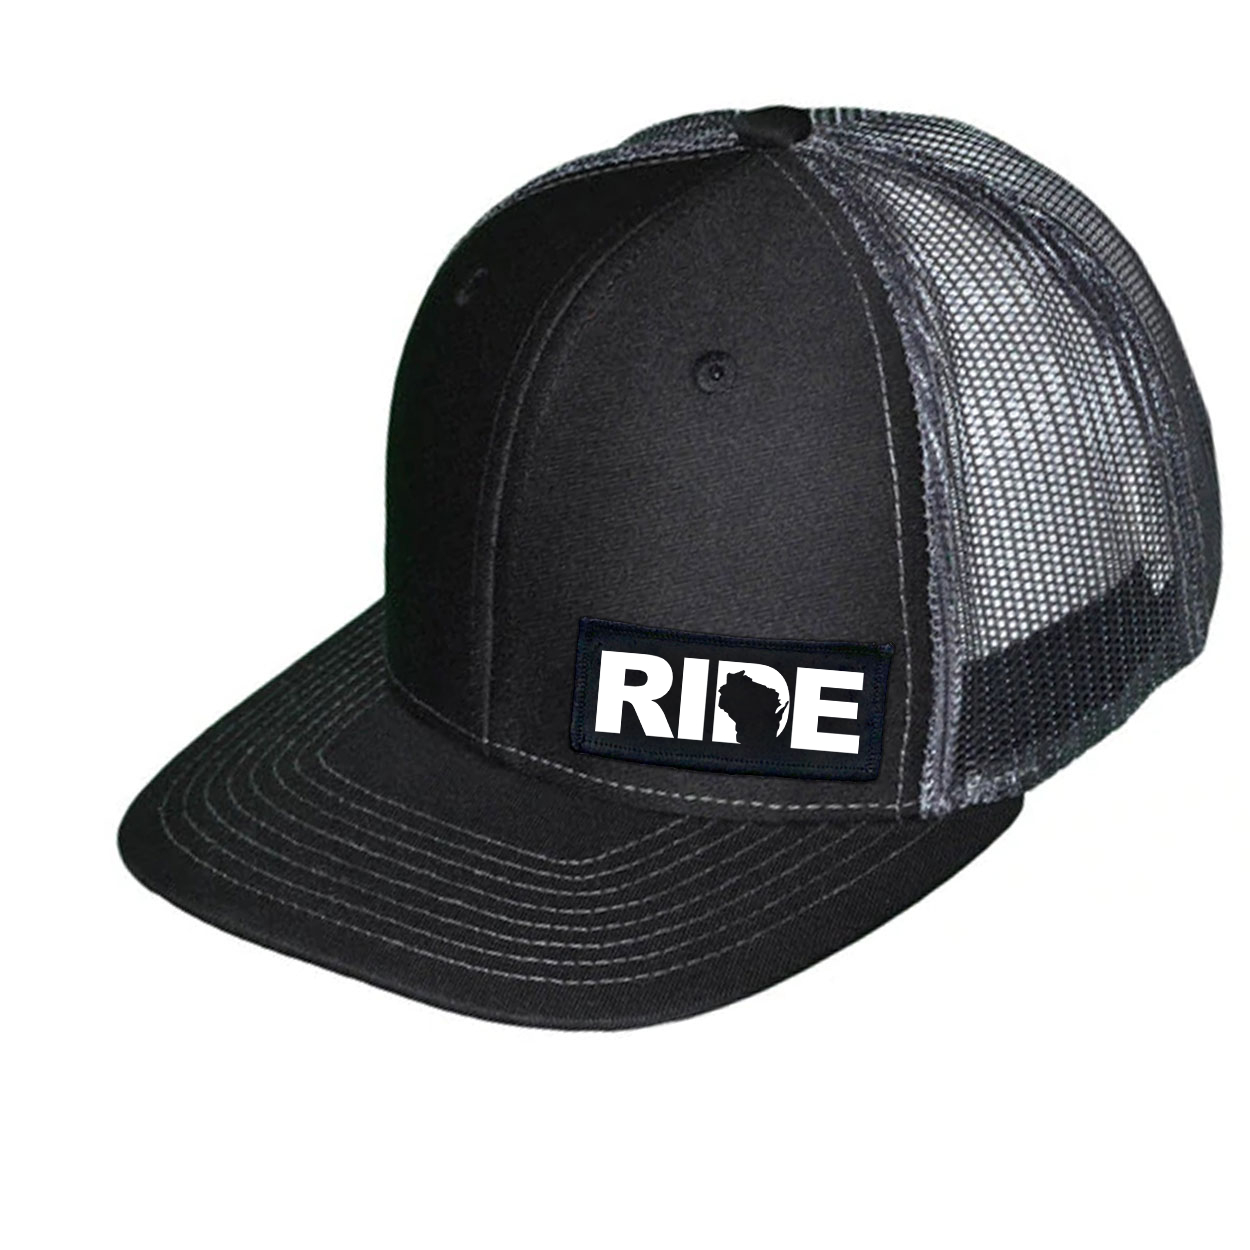 Ride Wisconsin Night Out Woven Patch Snapback Trucker Hat Black/Dark Gray (White Logo)